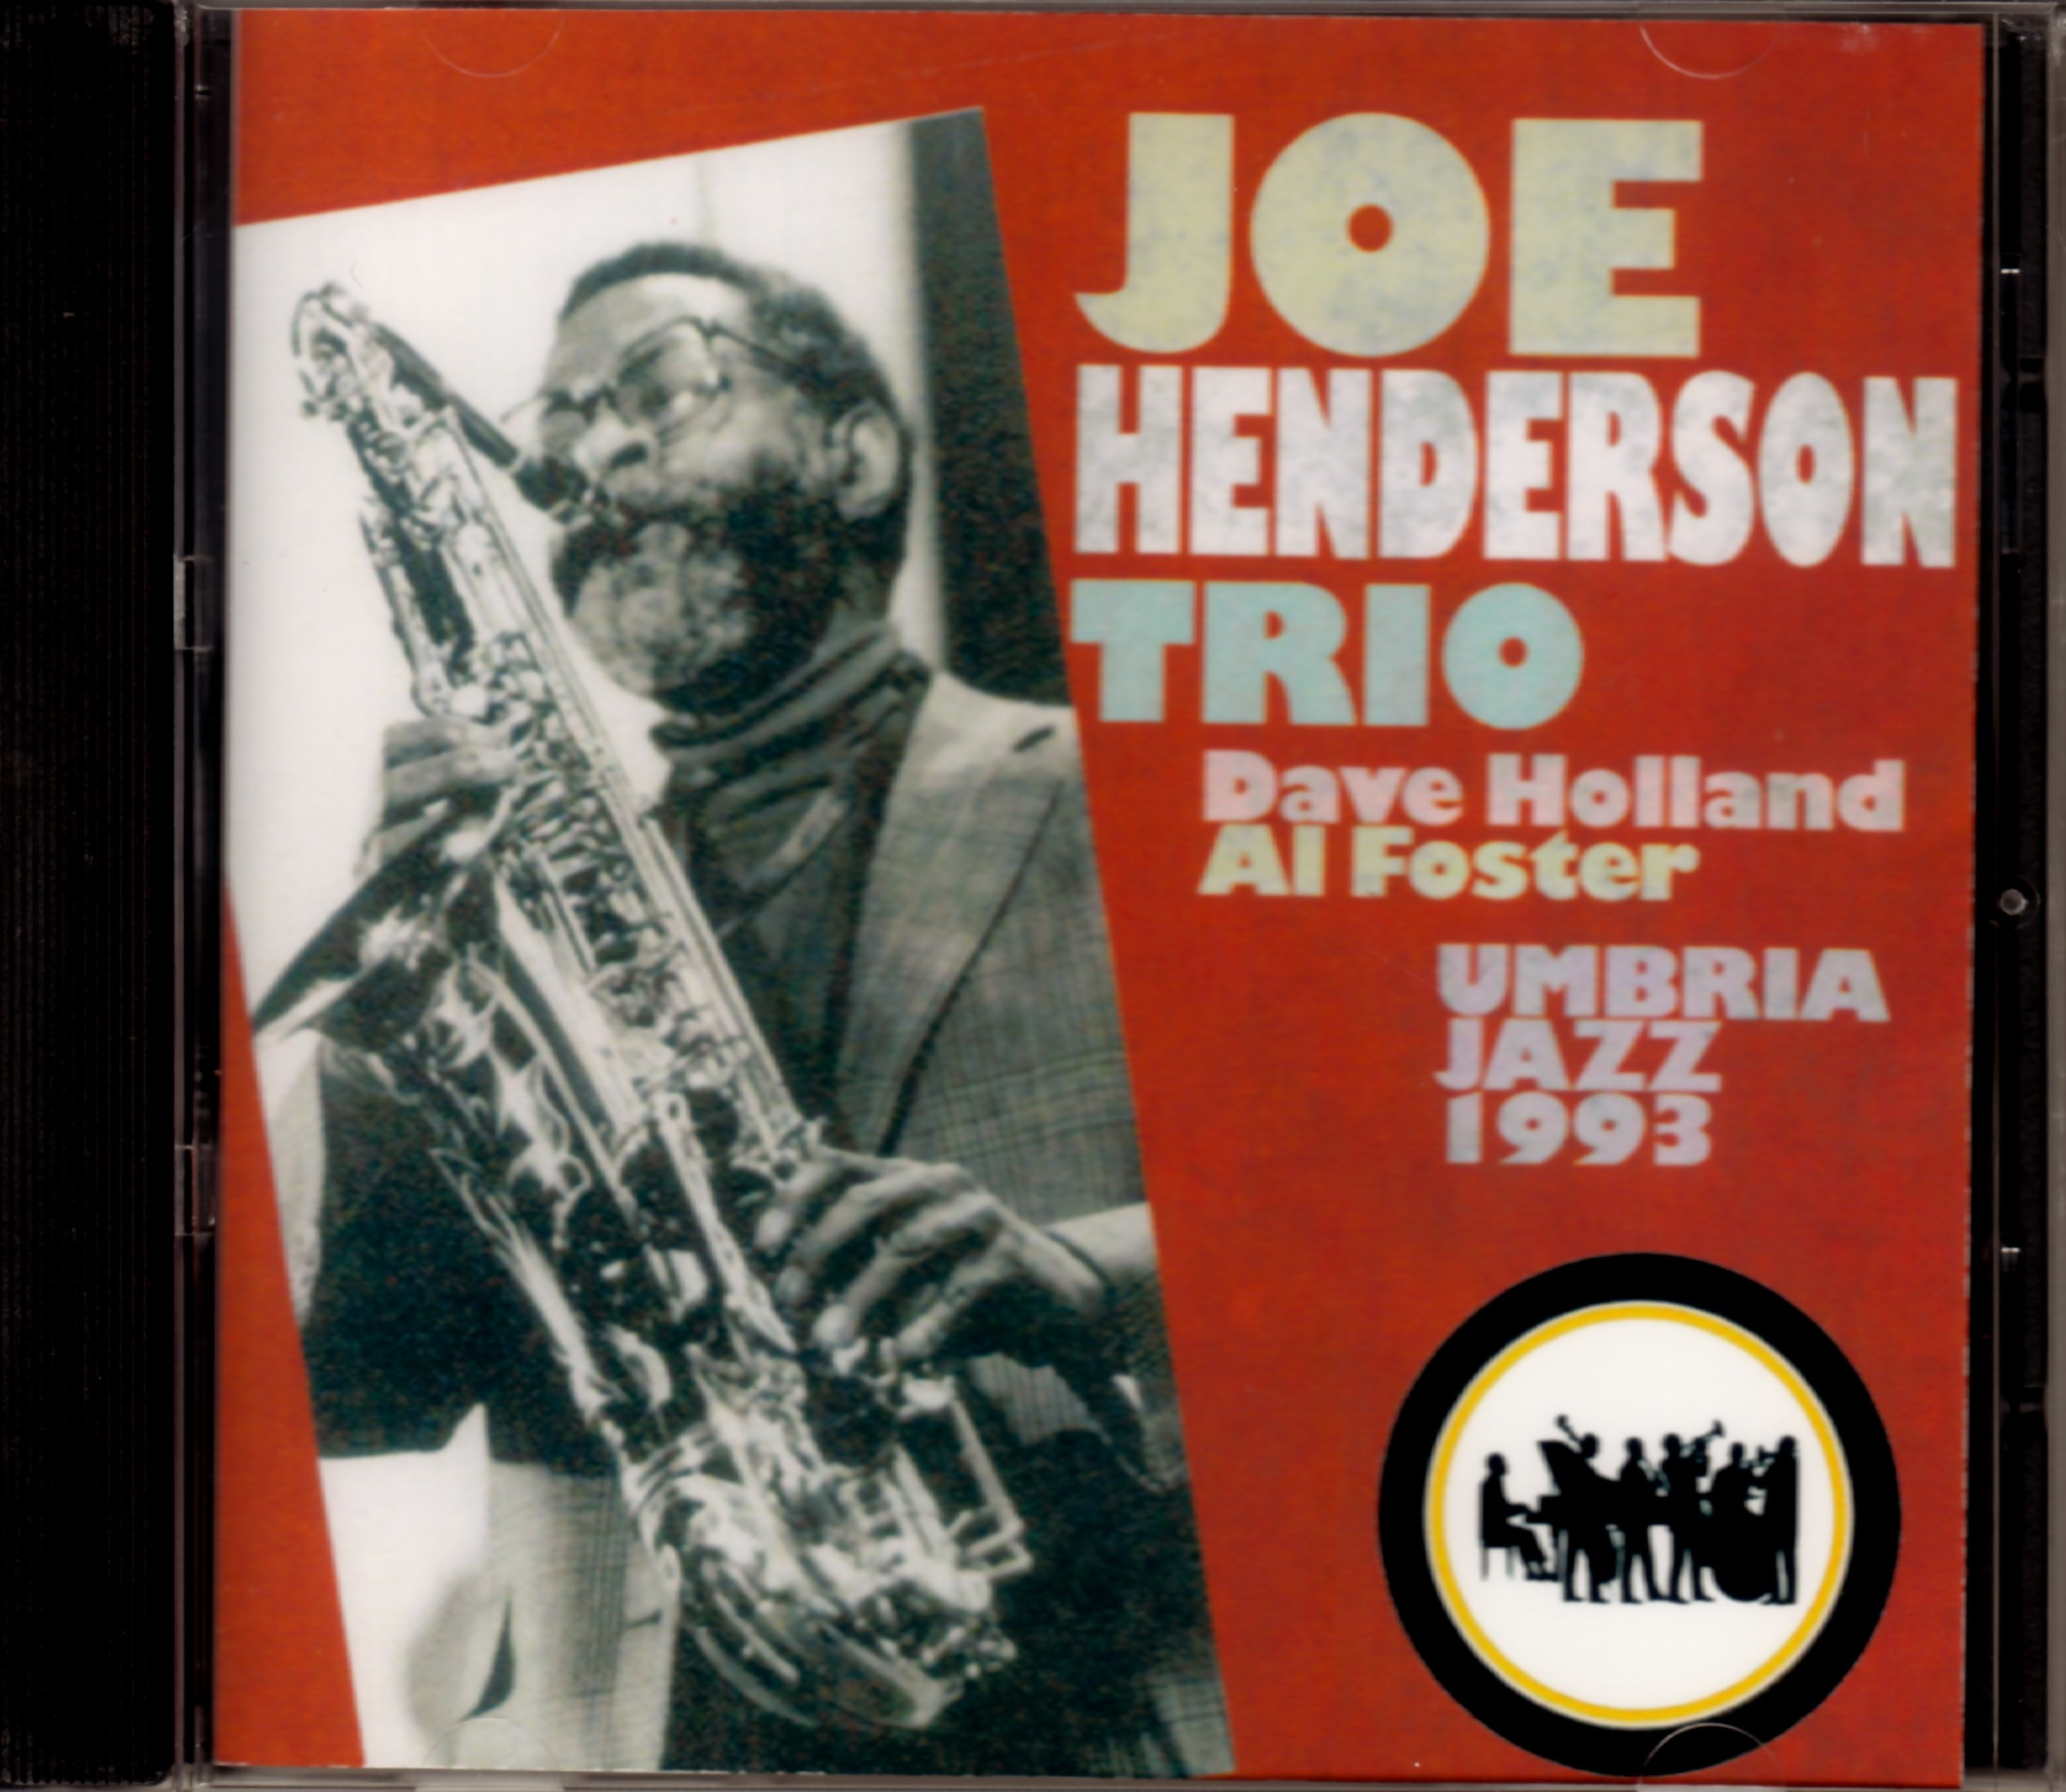 Joe Henderson,Dave Hollans ジョー・ヘンダーソン/Italy 1993